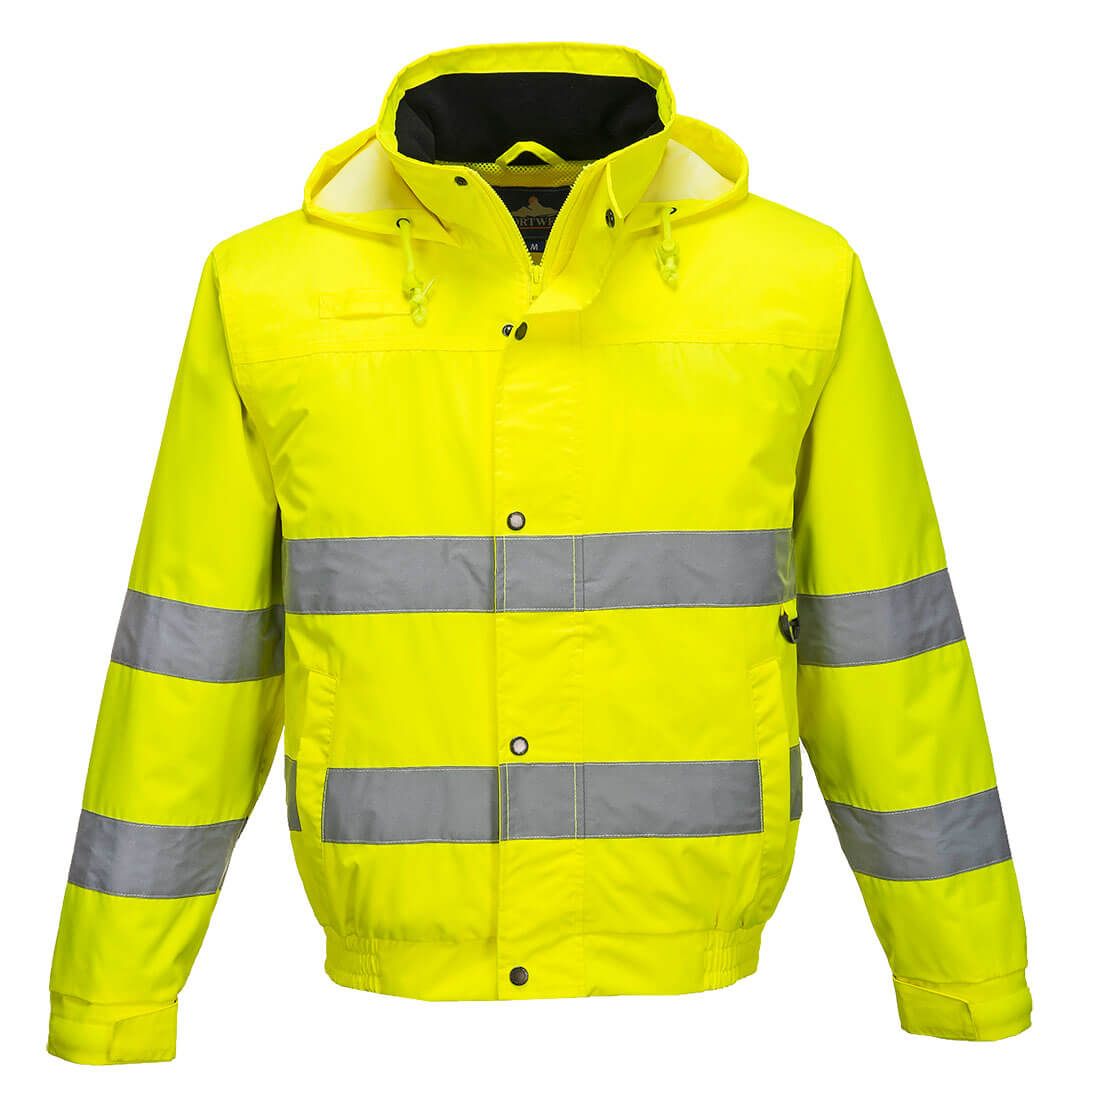 Image of Oxford Weave 150D Class 3 Hi Vis Bomber Jacket Yellow 2XL